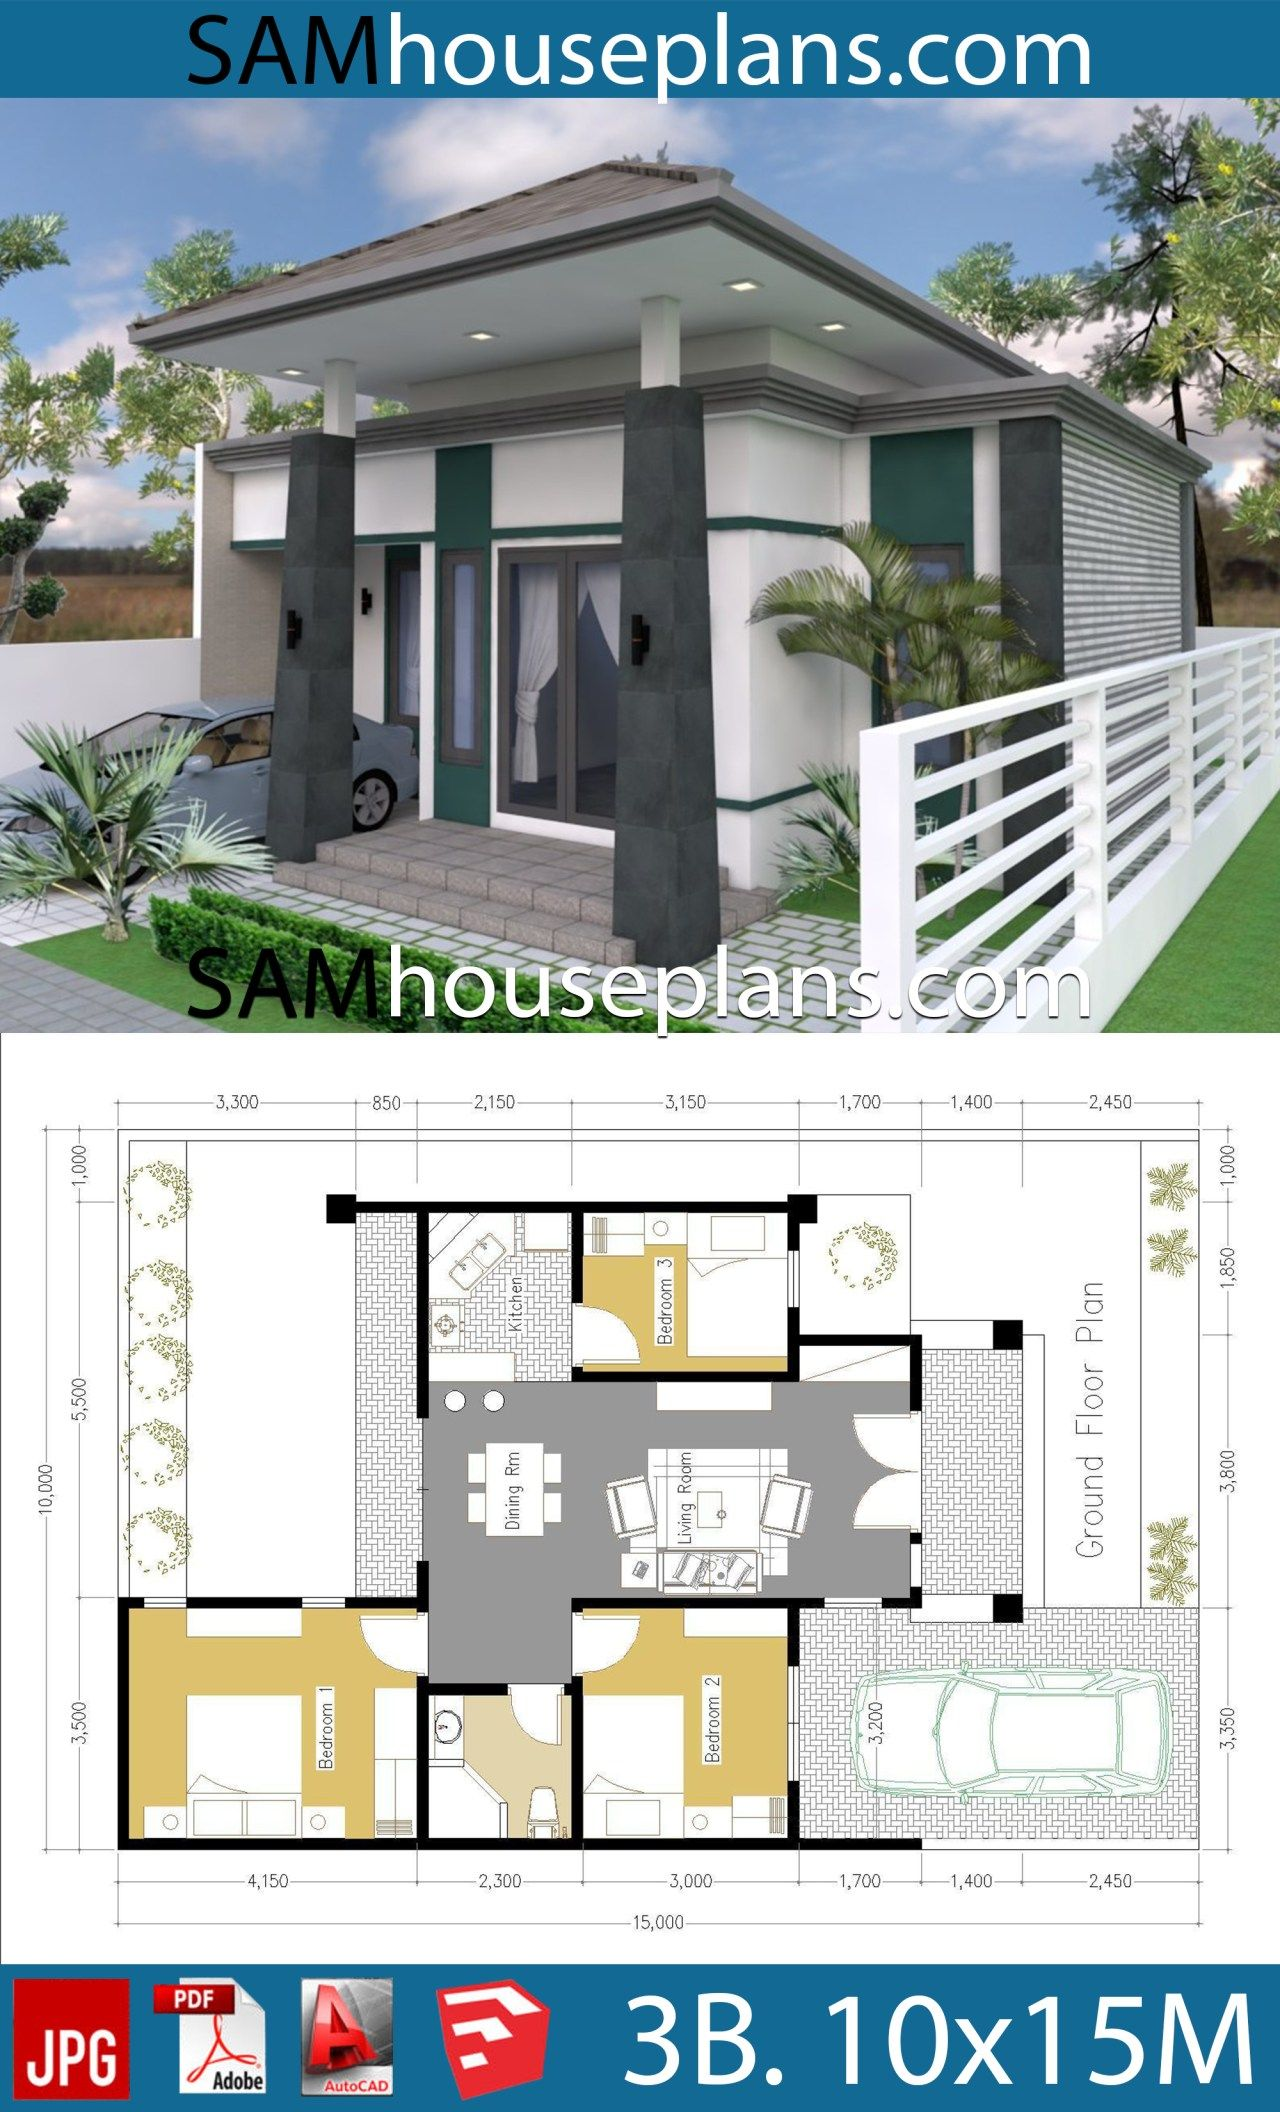 House Plans 10x15 With 3 Bedrooms Sam House Plans In 2020 My House Plans Model House Plan Small House Design Plans